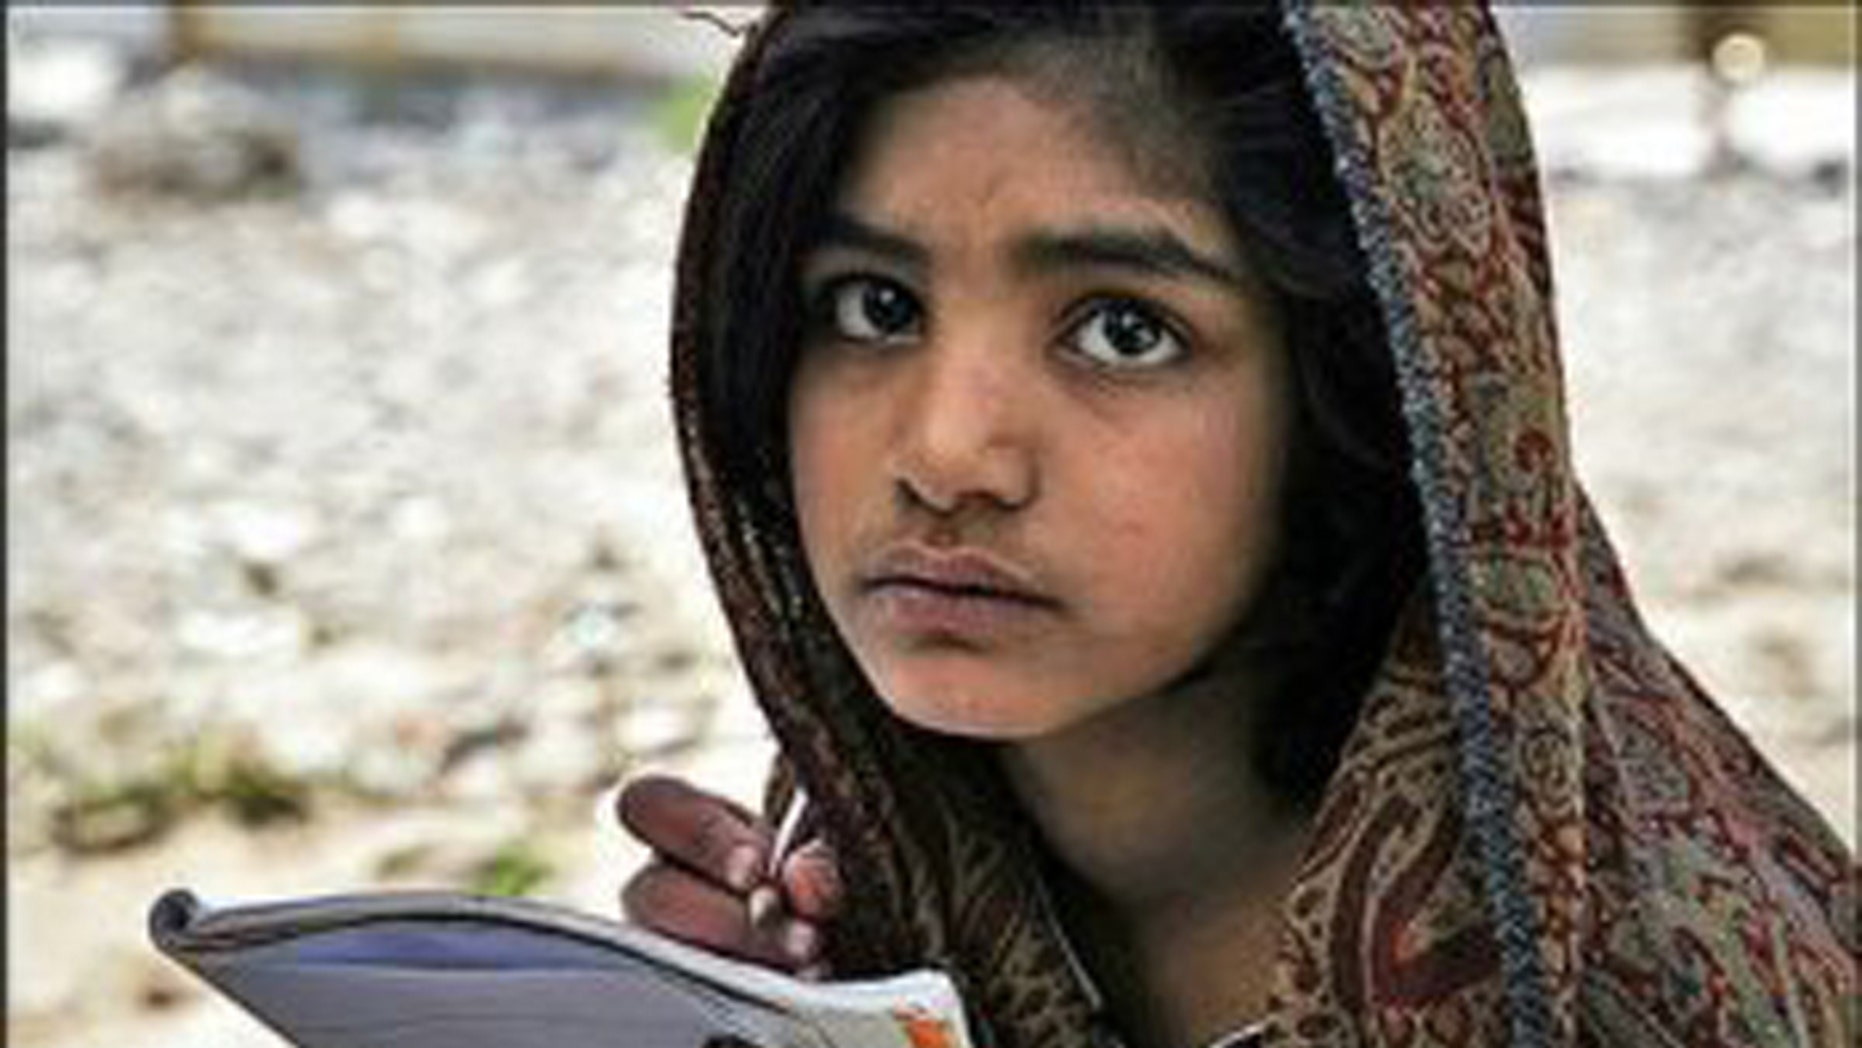 Rimsha Masih faces execution for allegedly burning a page of a Islamic learning guide. (PakistanisforPeace.com)